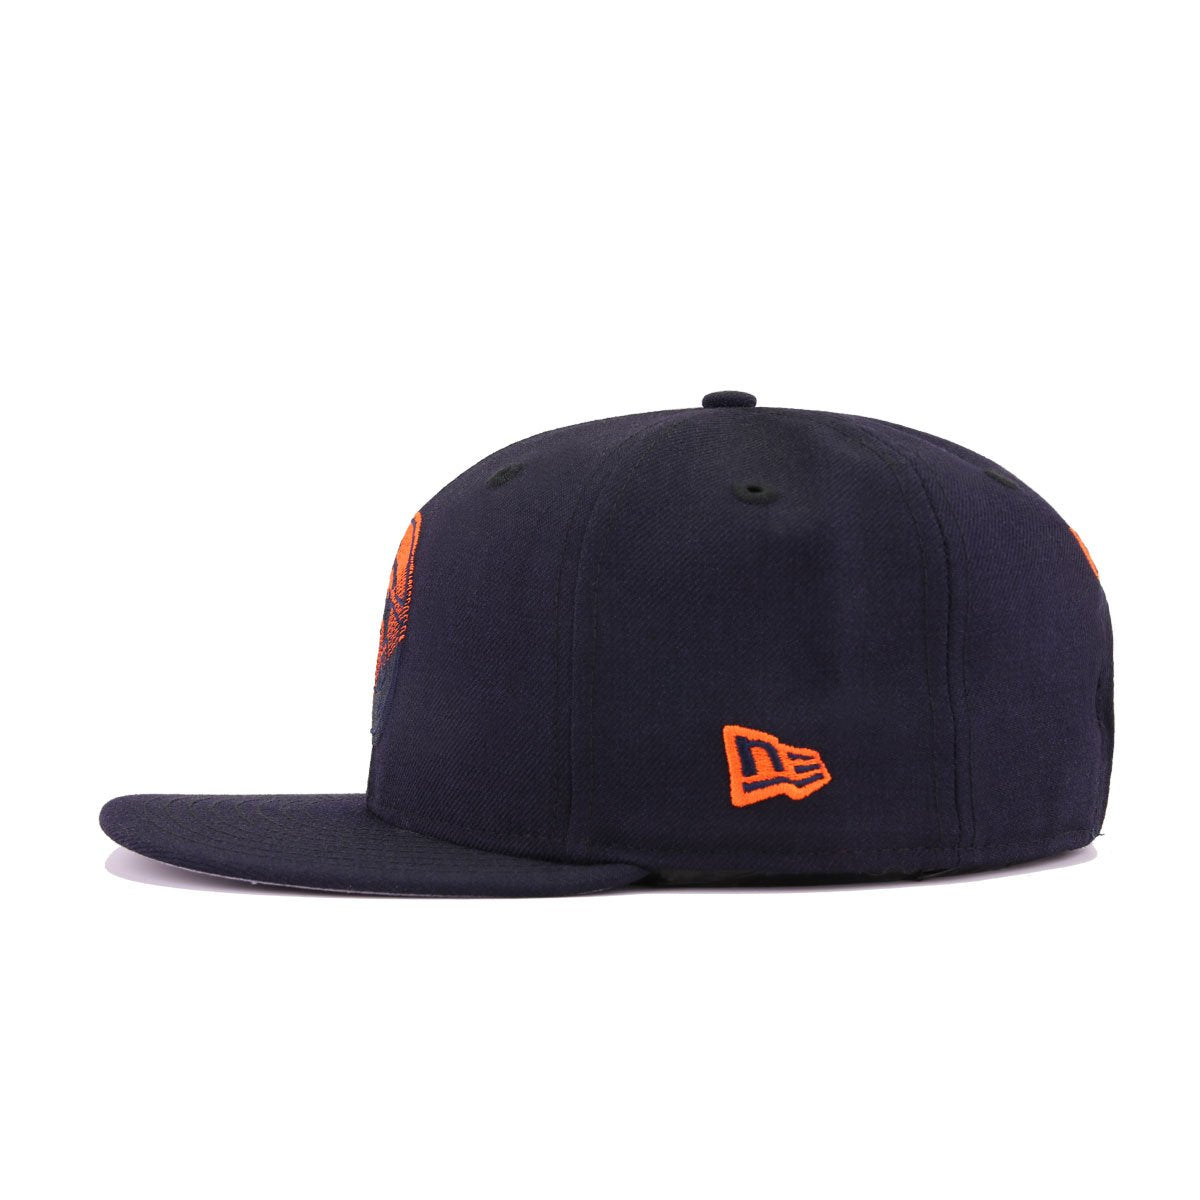 Denver Broncos Legacy Navy Orangeade New Era 9Fifty Snapback